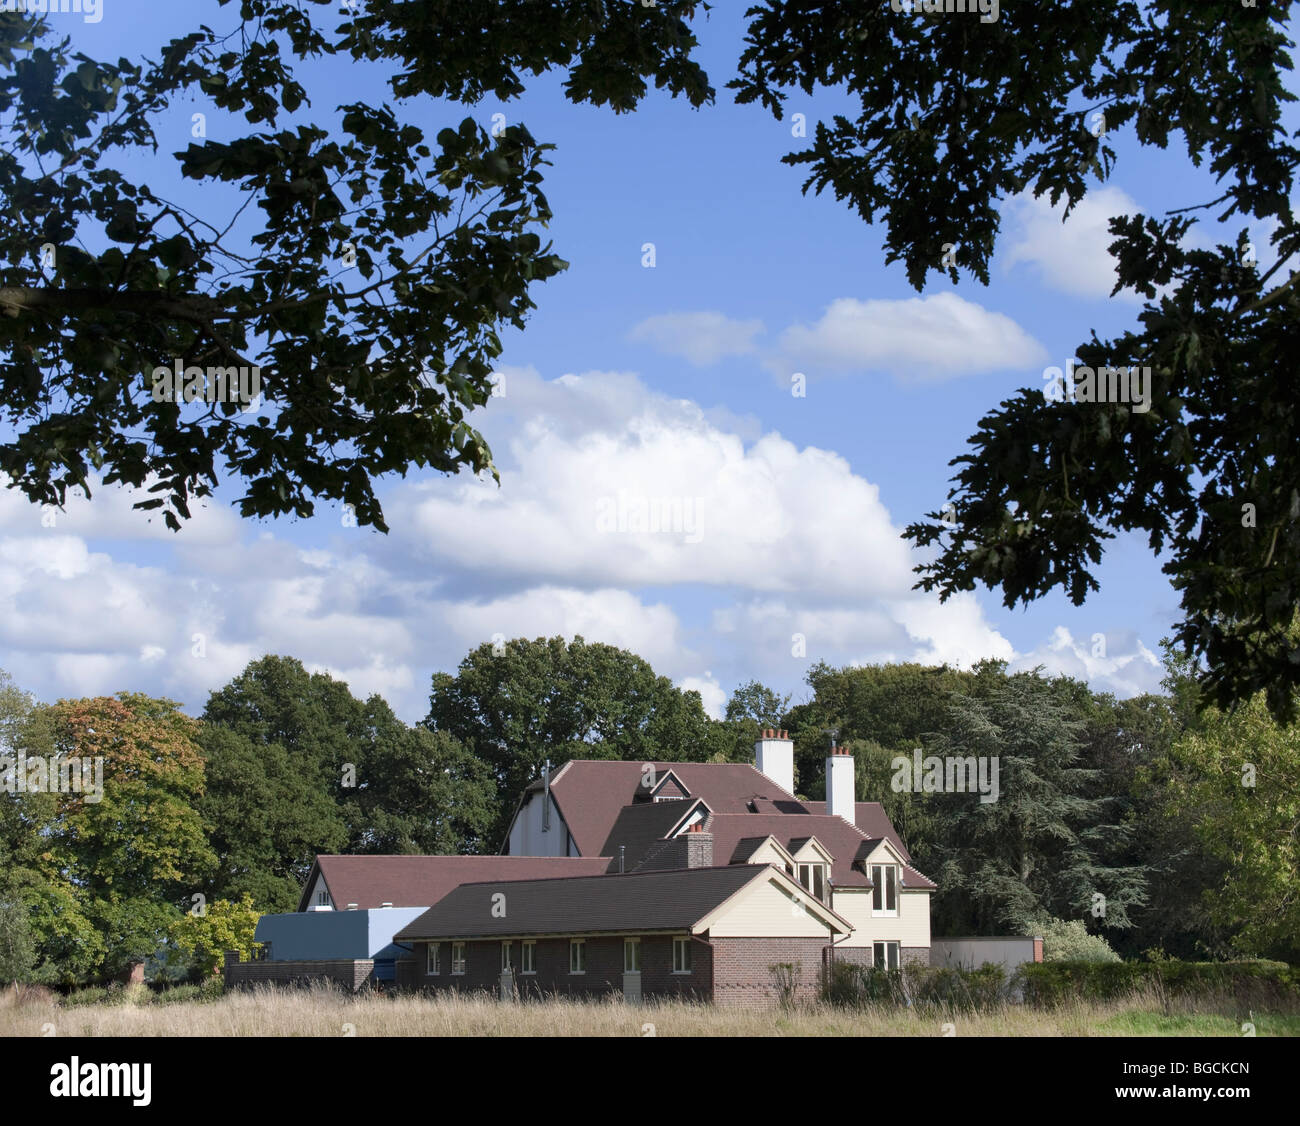 a rural view of a detached house - exterior view and countrside - Stock Image